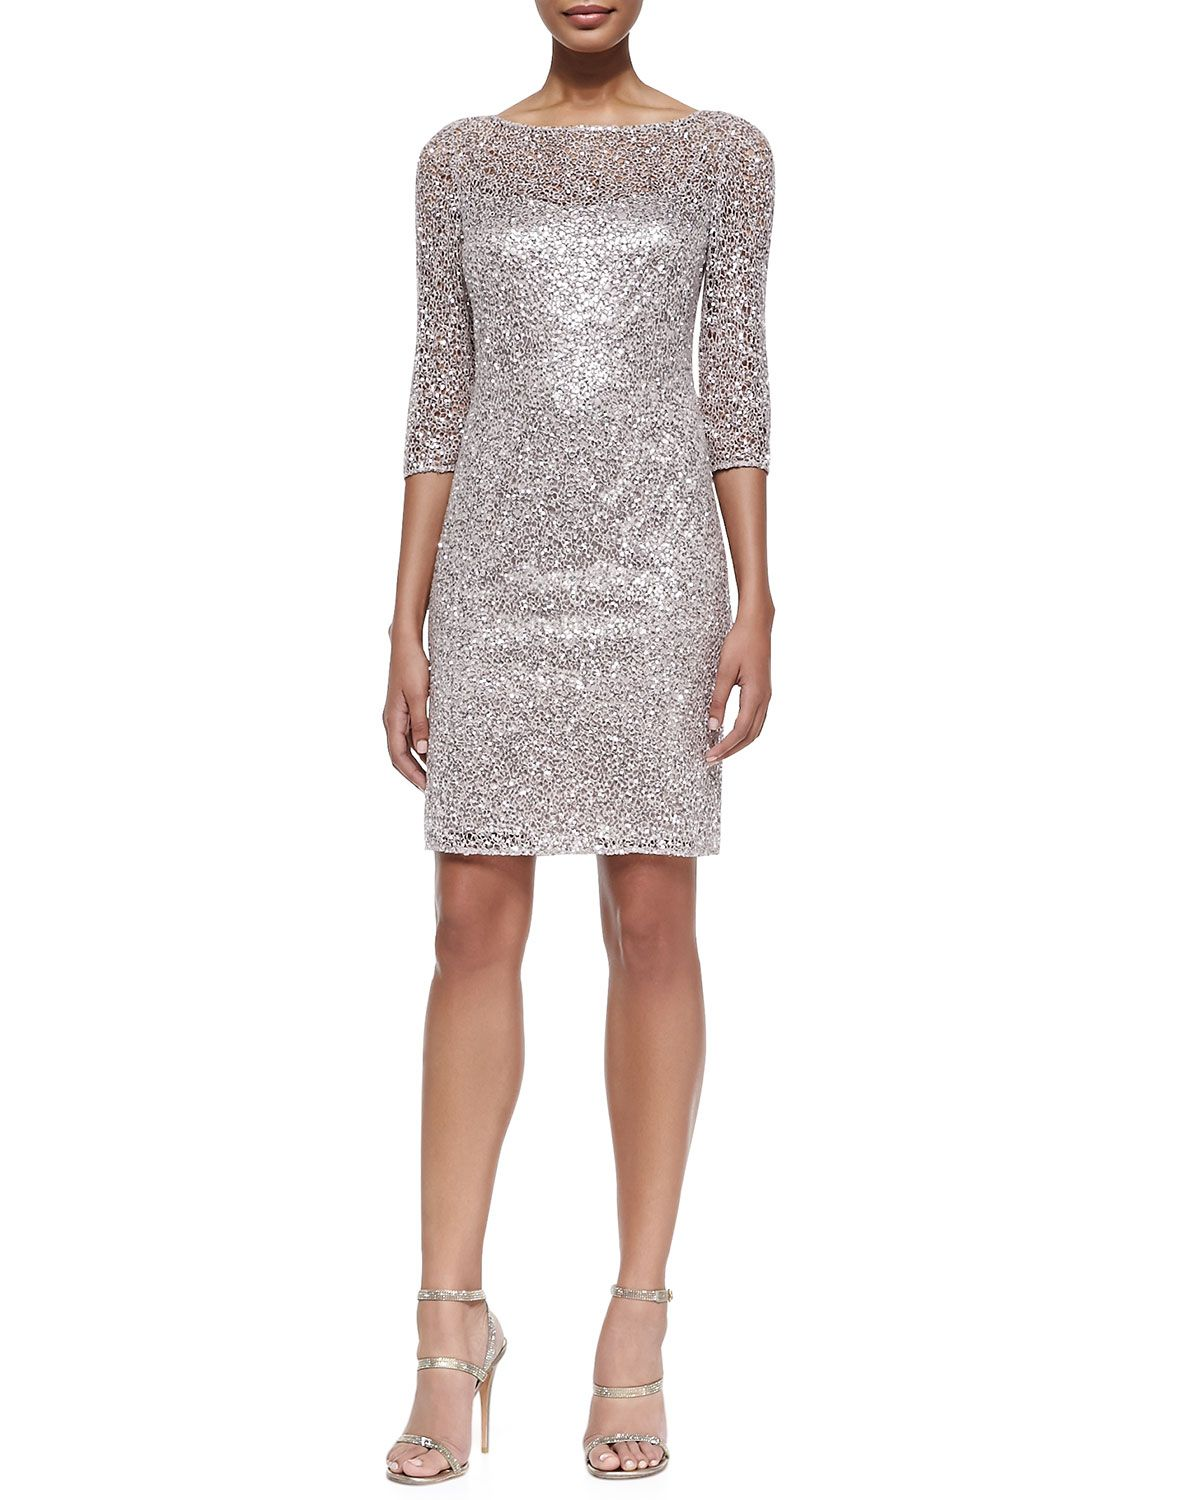 0c35b8212e7 Kay Unger New York Sequined Lace-Overlay Cocktail Dress